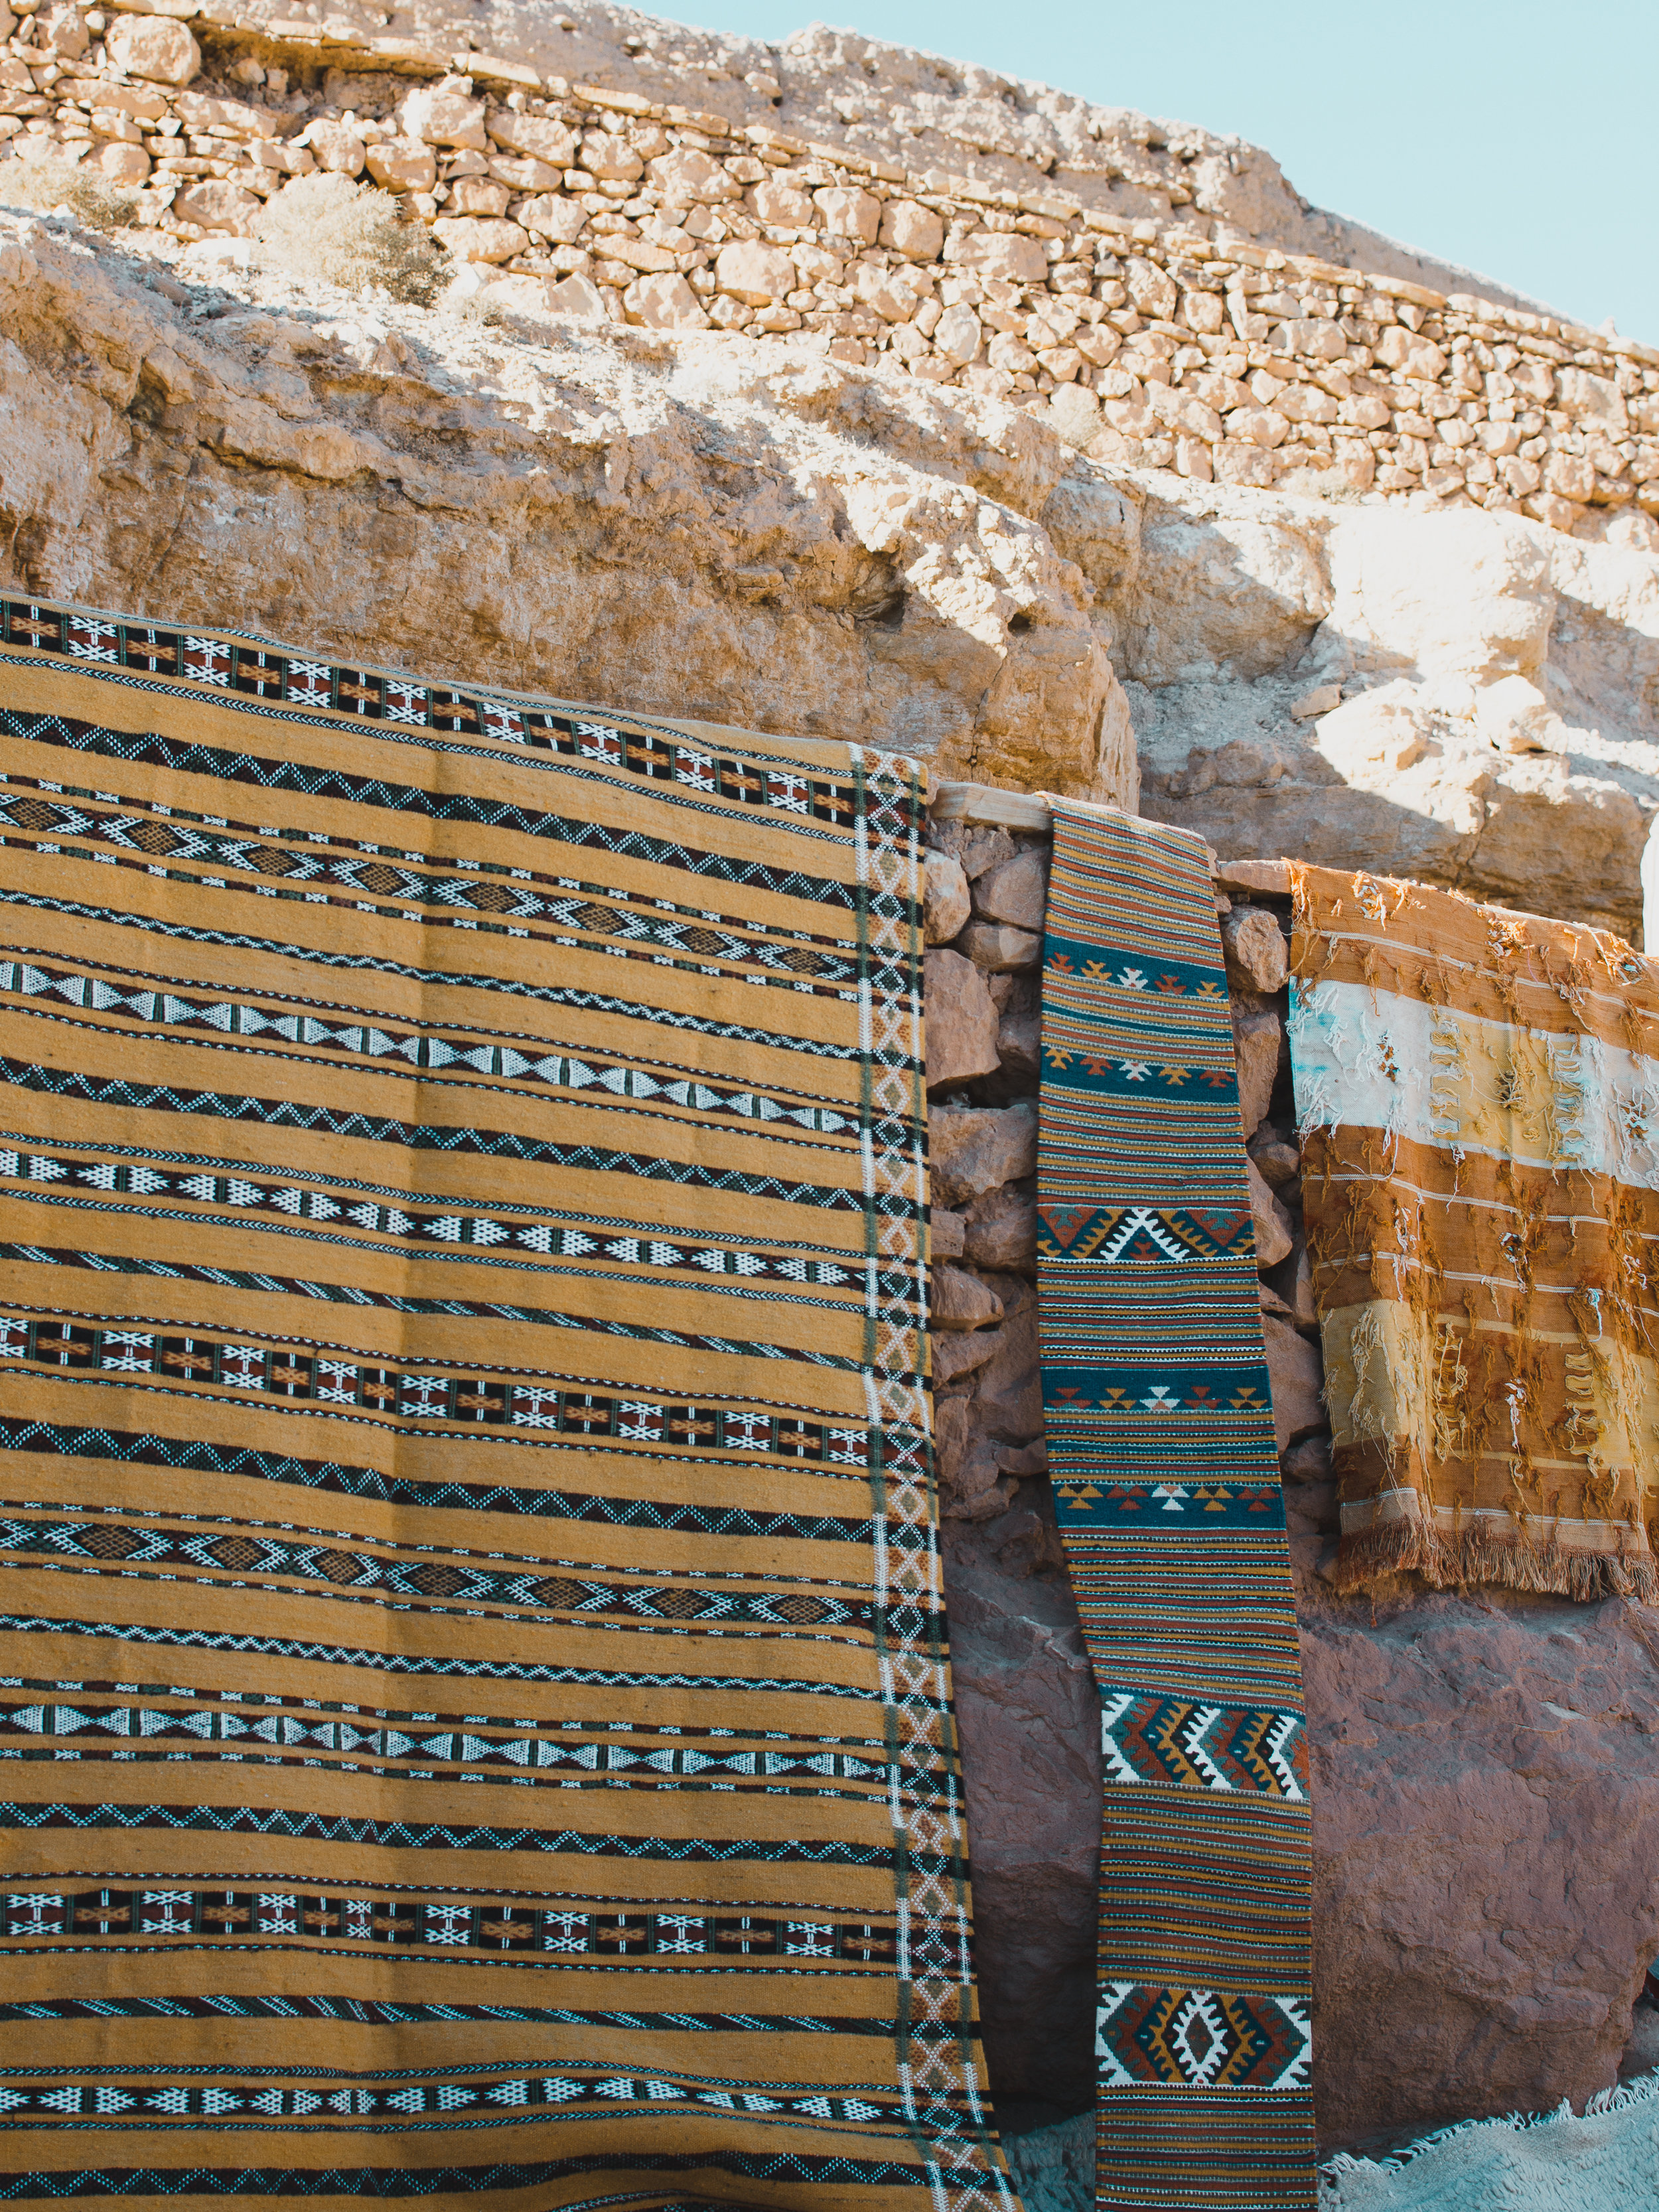 Admiring all the beautiful rugs at Ait Benhaddou in Morocco